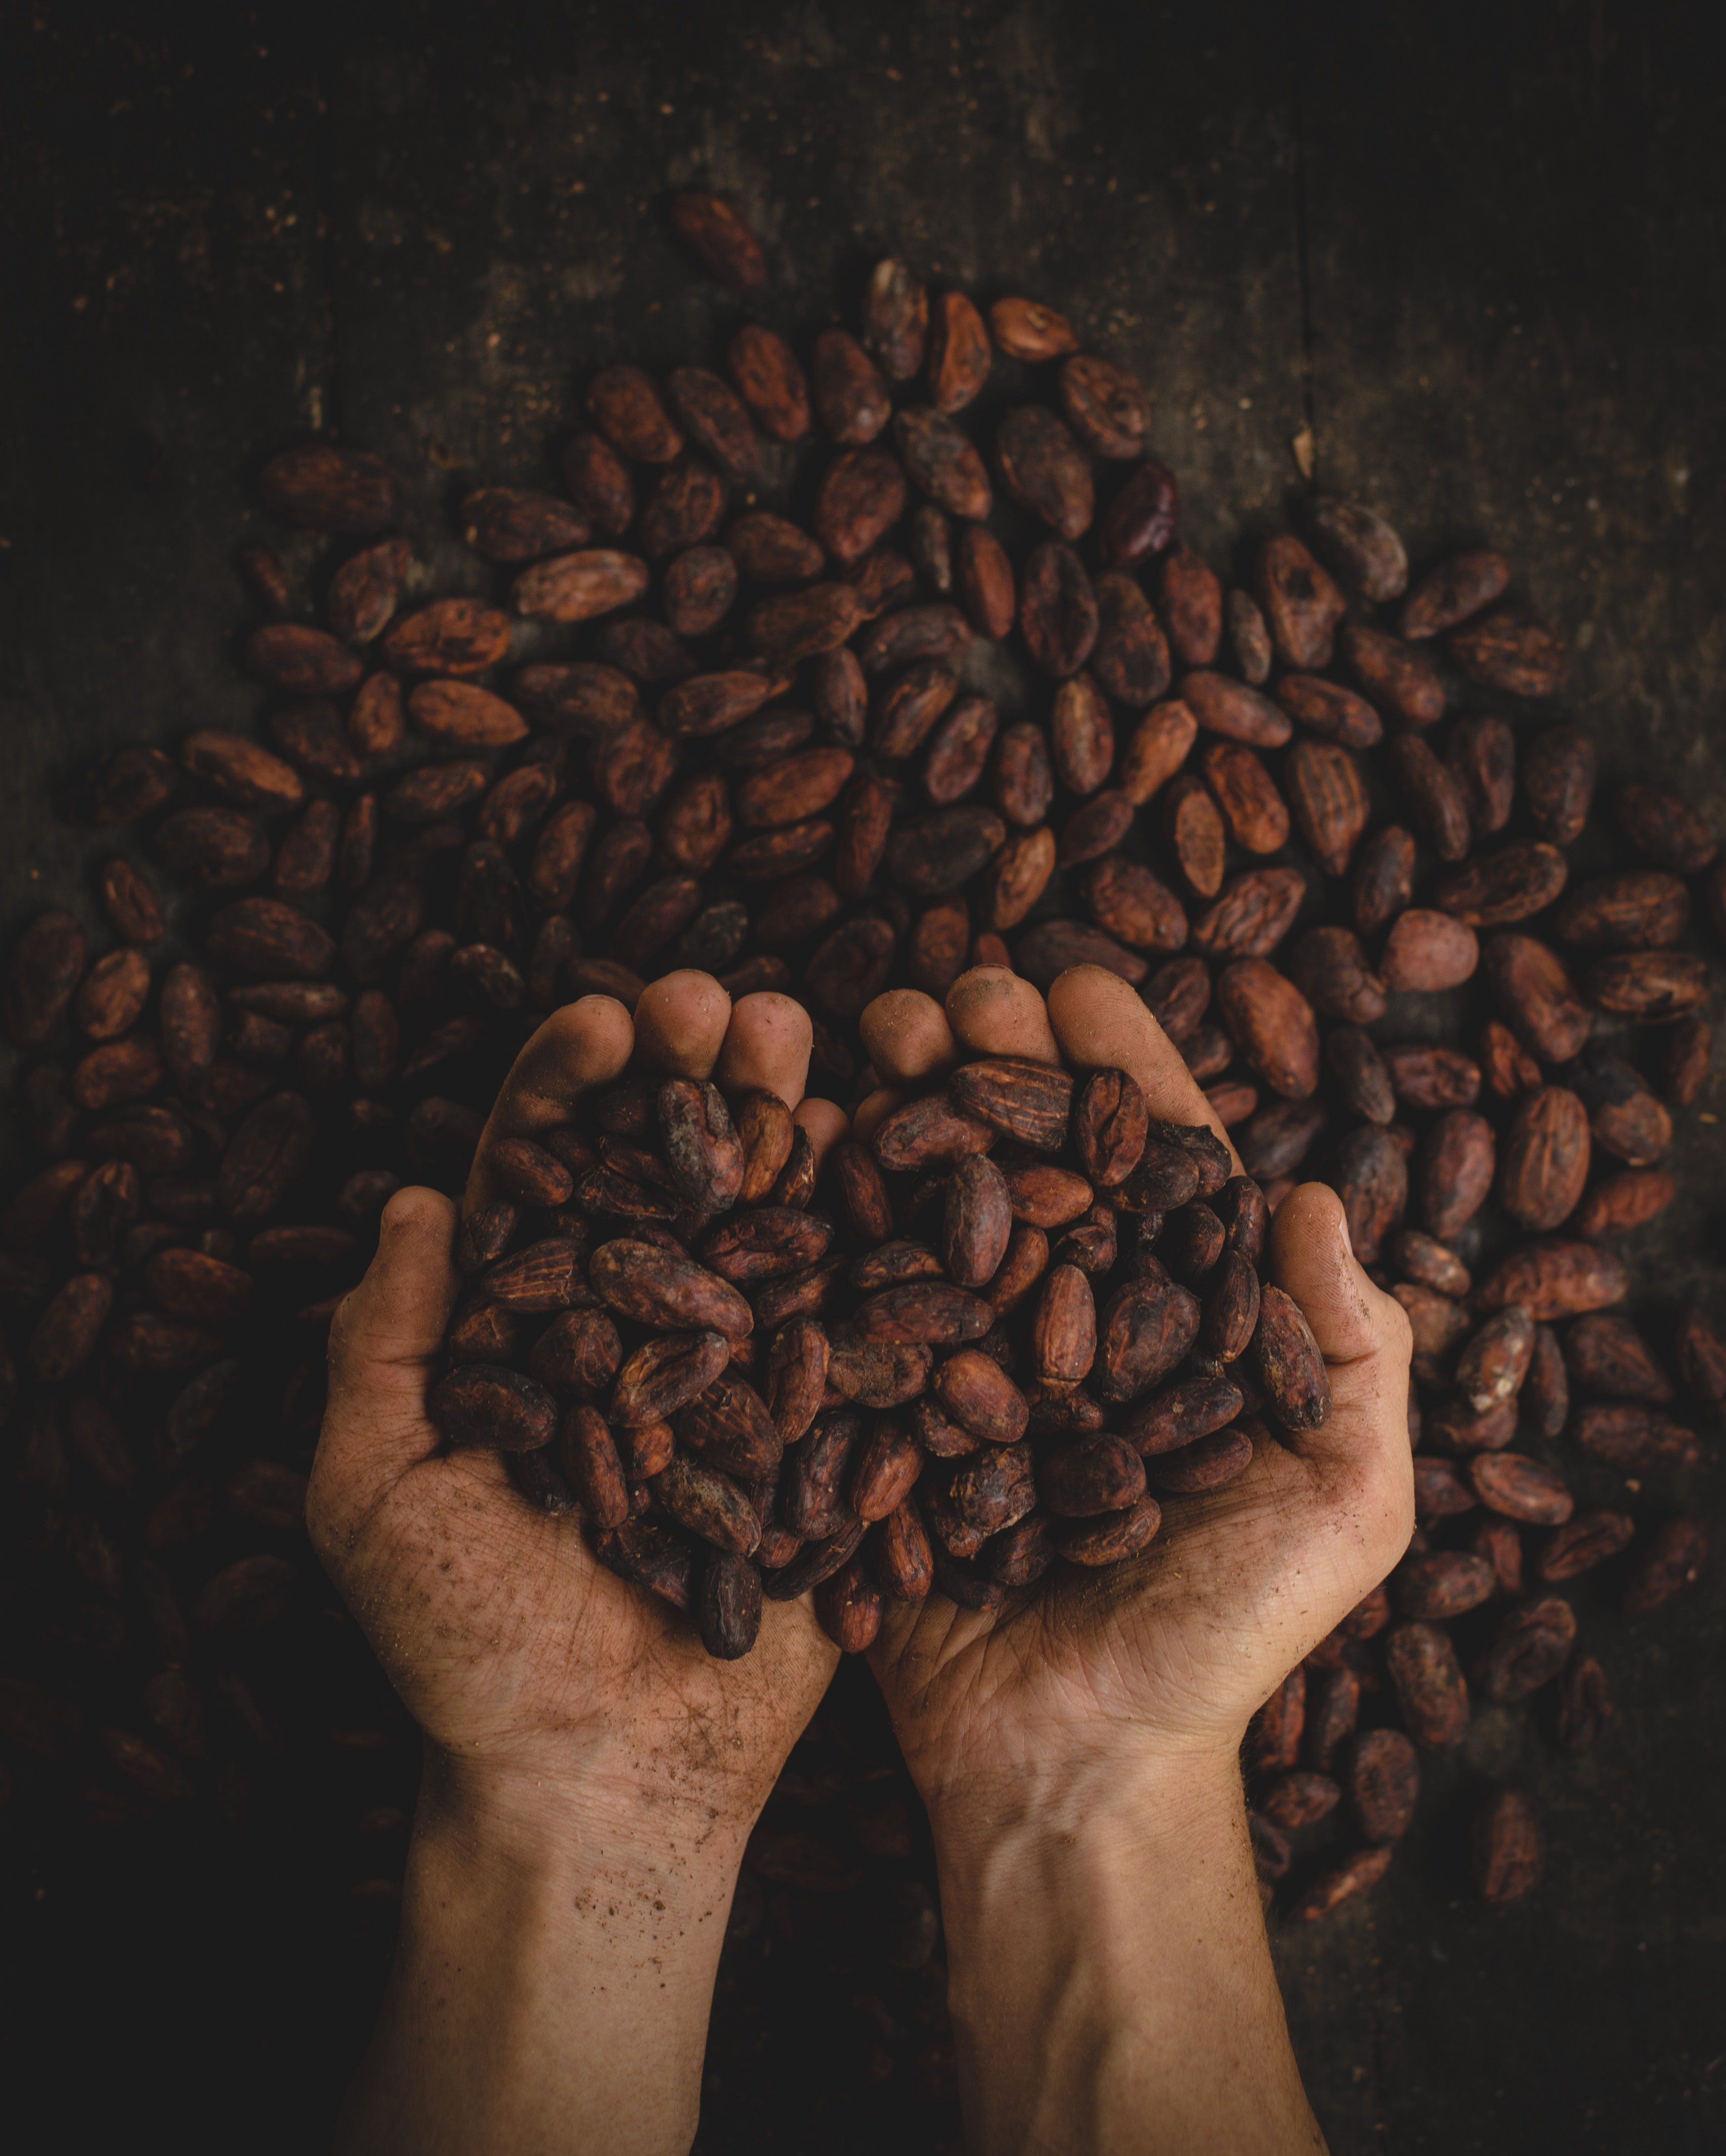 A handful of cacao beans taken from a pile of cacao beans